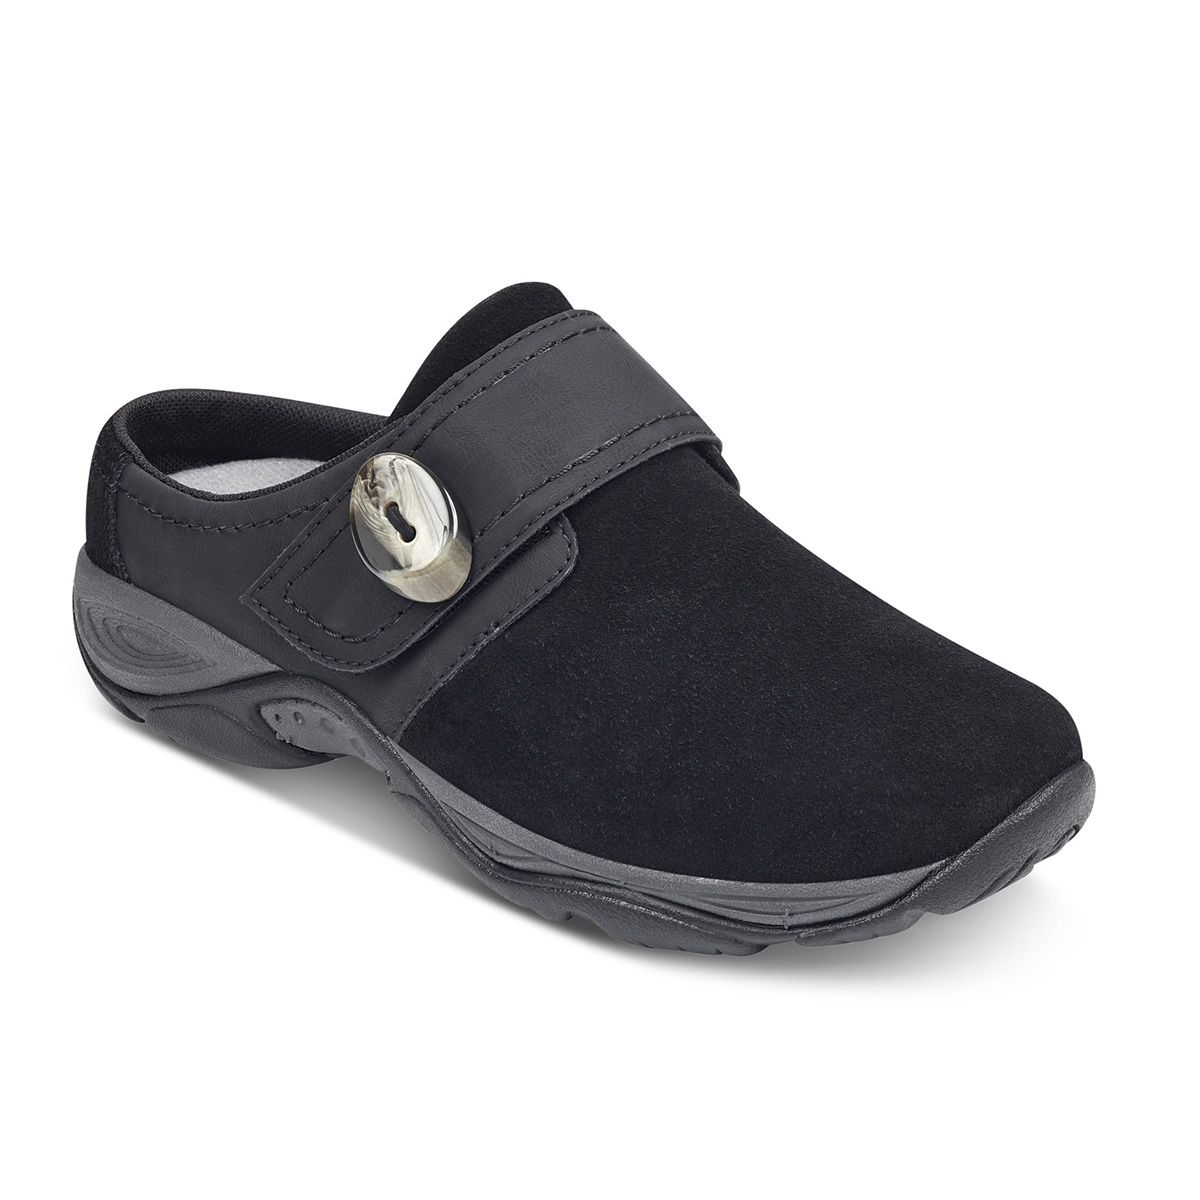 0e503808ebca Easy Spirit Shoes - Macy s